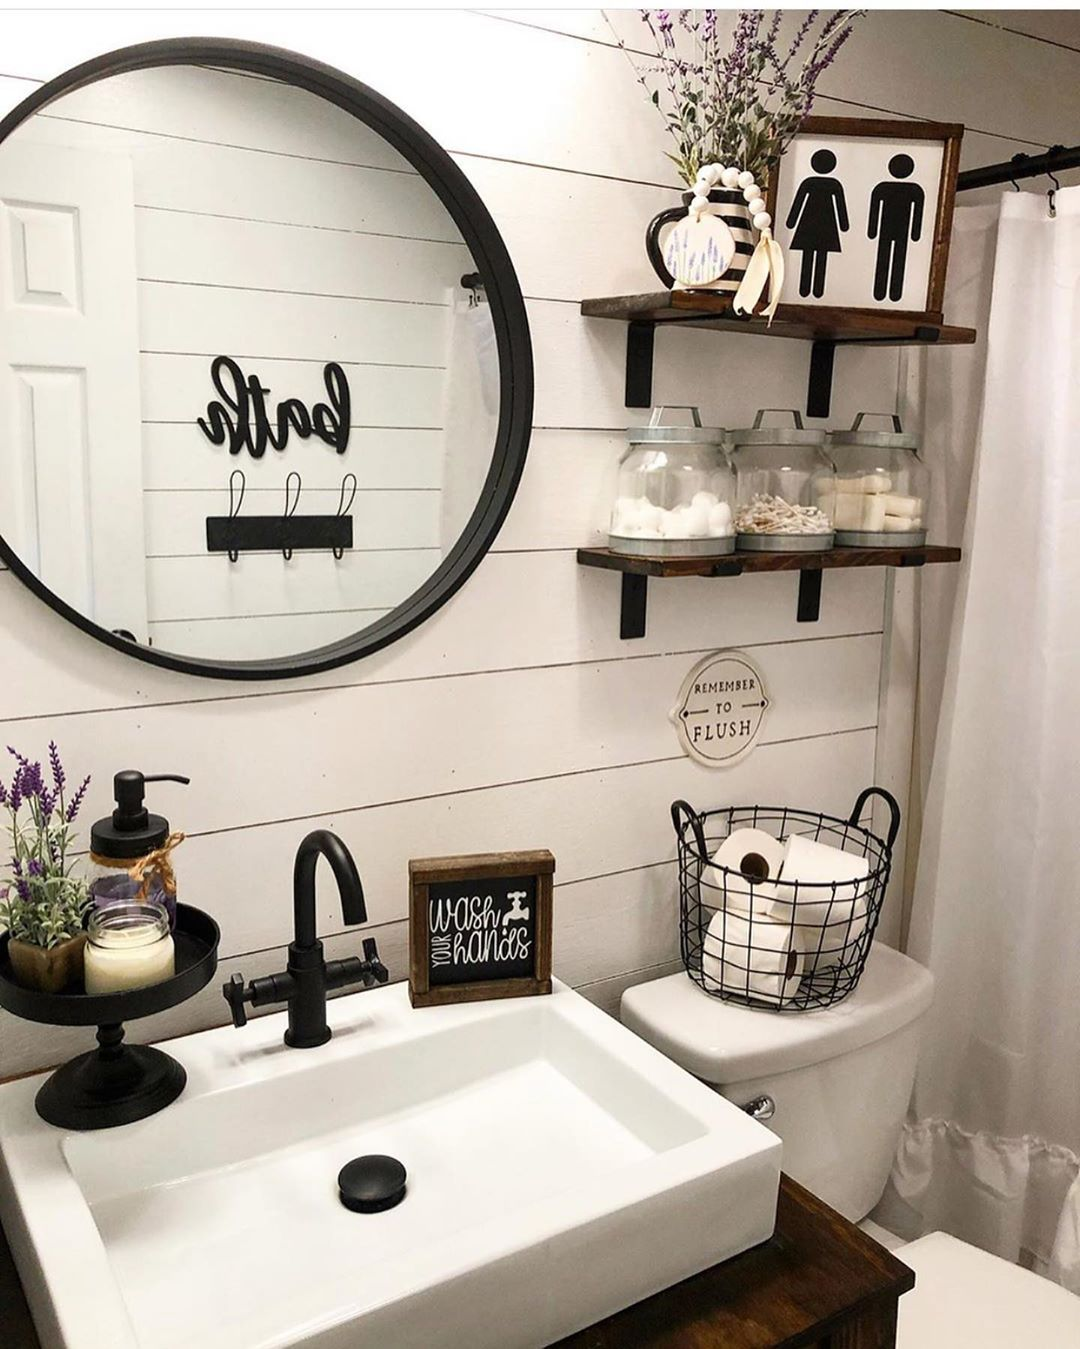 Farmhouse Vibes On Instagram Y All We Had The Best Time At The Luke Combs Concert Last Night He Was Grea Small Bathroom Decor Bathroom Decor Restroom Decor